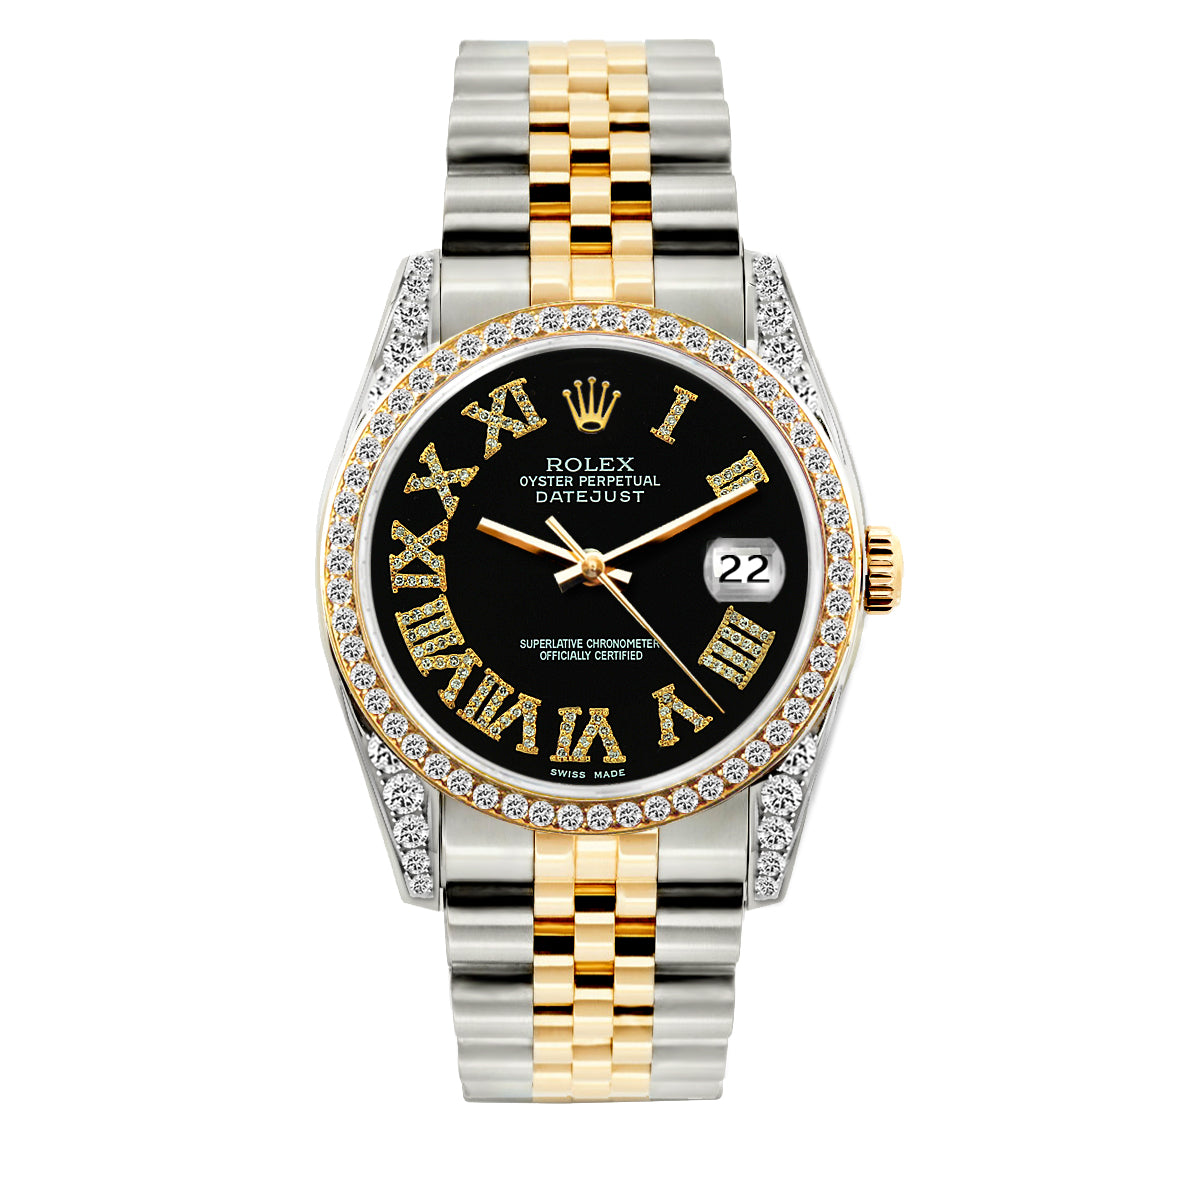 Rolex Datejust Diamond Watch, 36mm, Yellow Gold and Stainless Steel Black Roman Dial w/ Diamond Bezel and Lugs